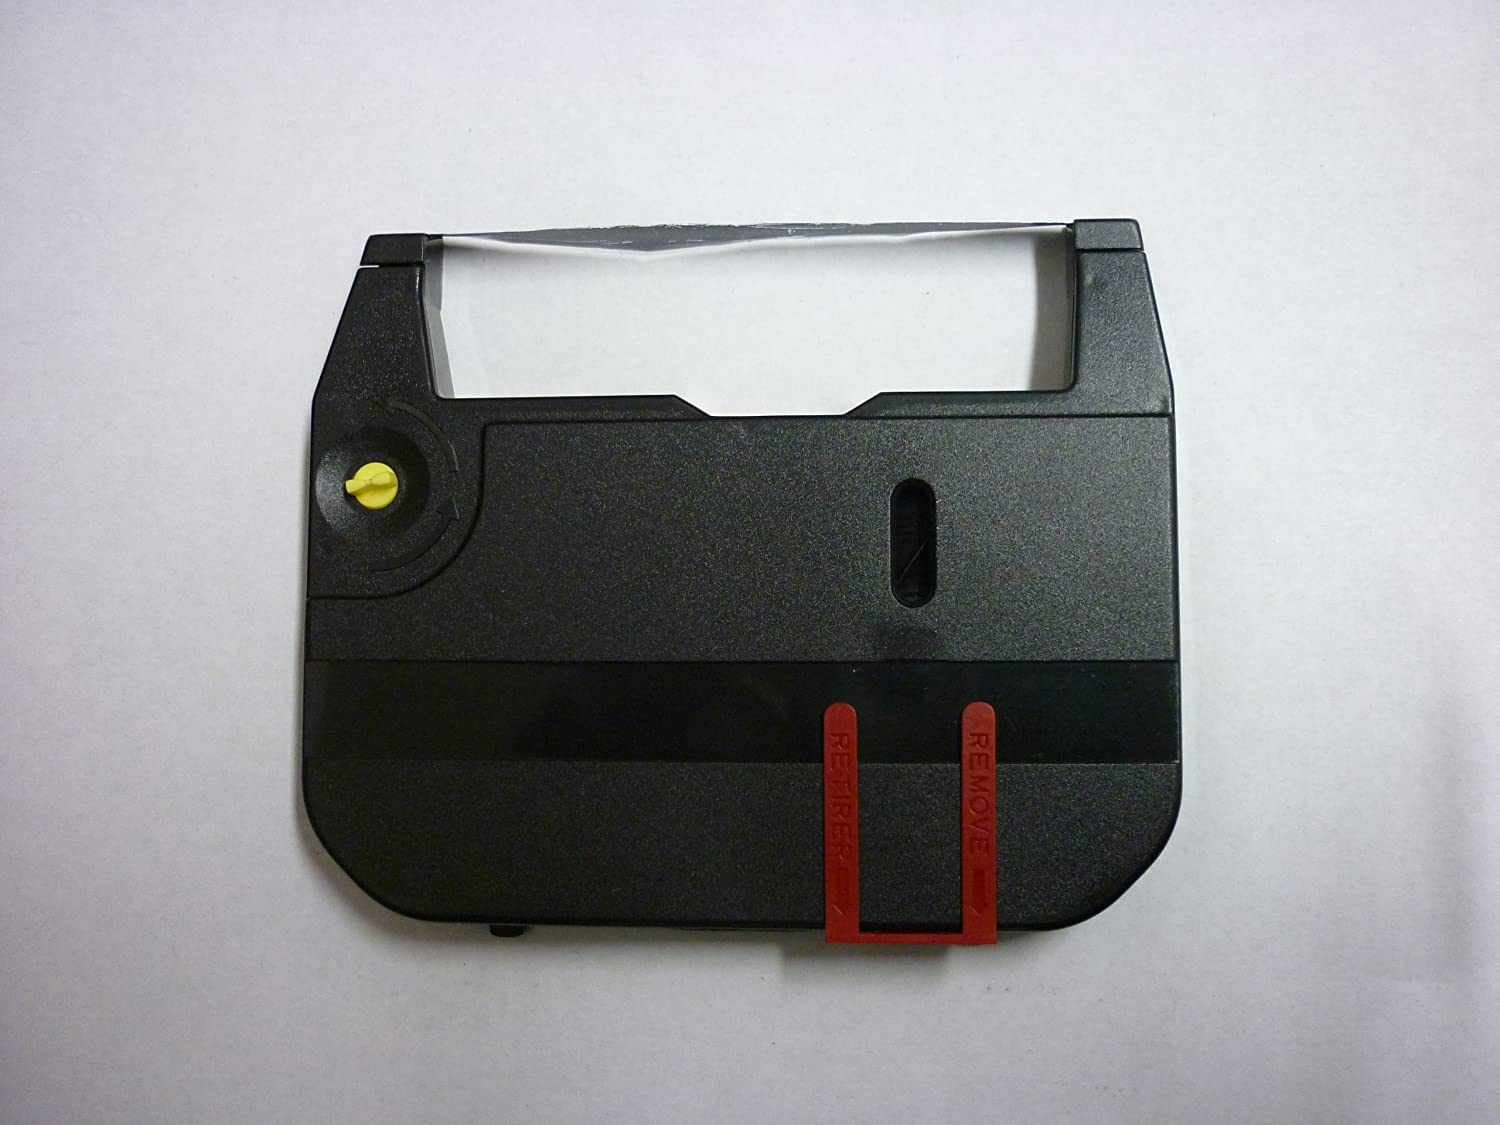 Compatible Correctable 1410 and QL-800 Series Typewriter Ribbon 1400 4300 PA-W1100 Sharp PA-4000